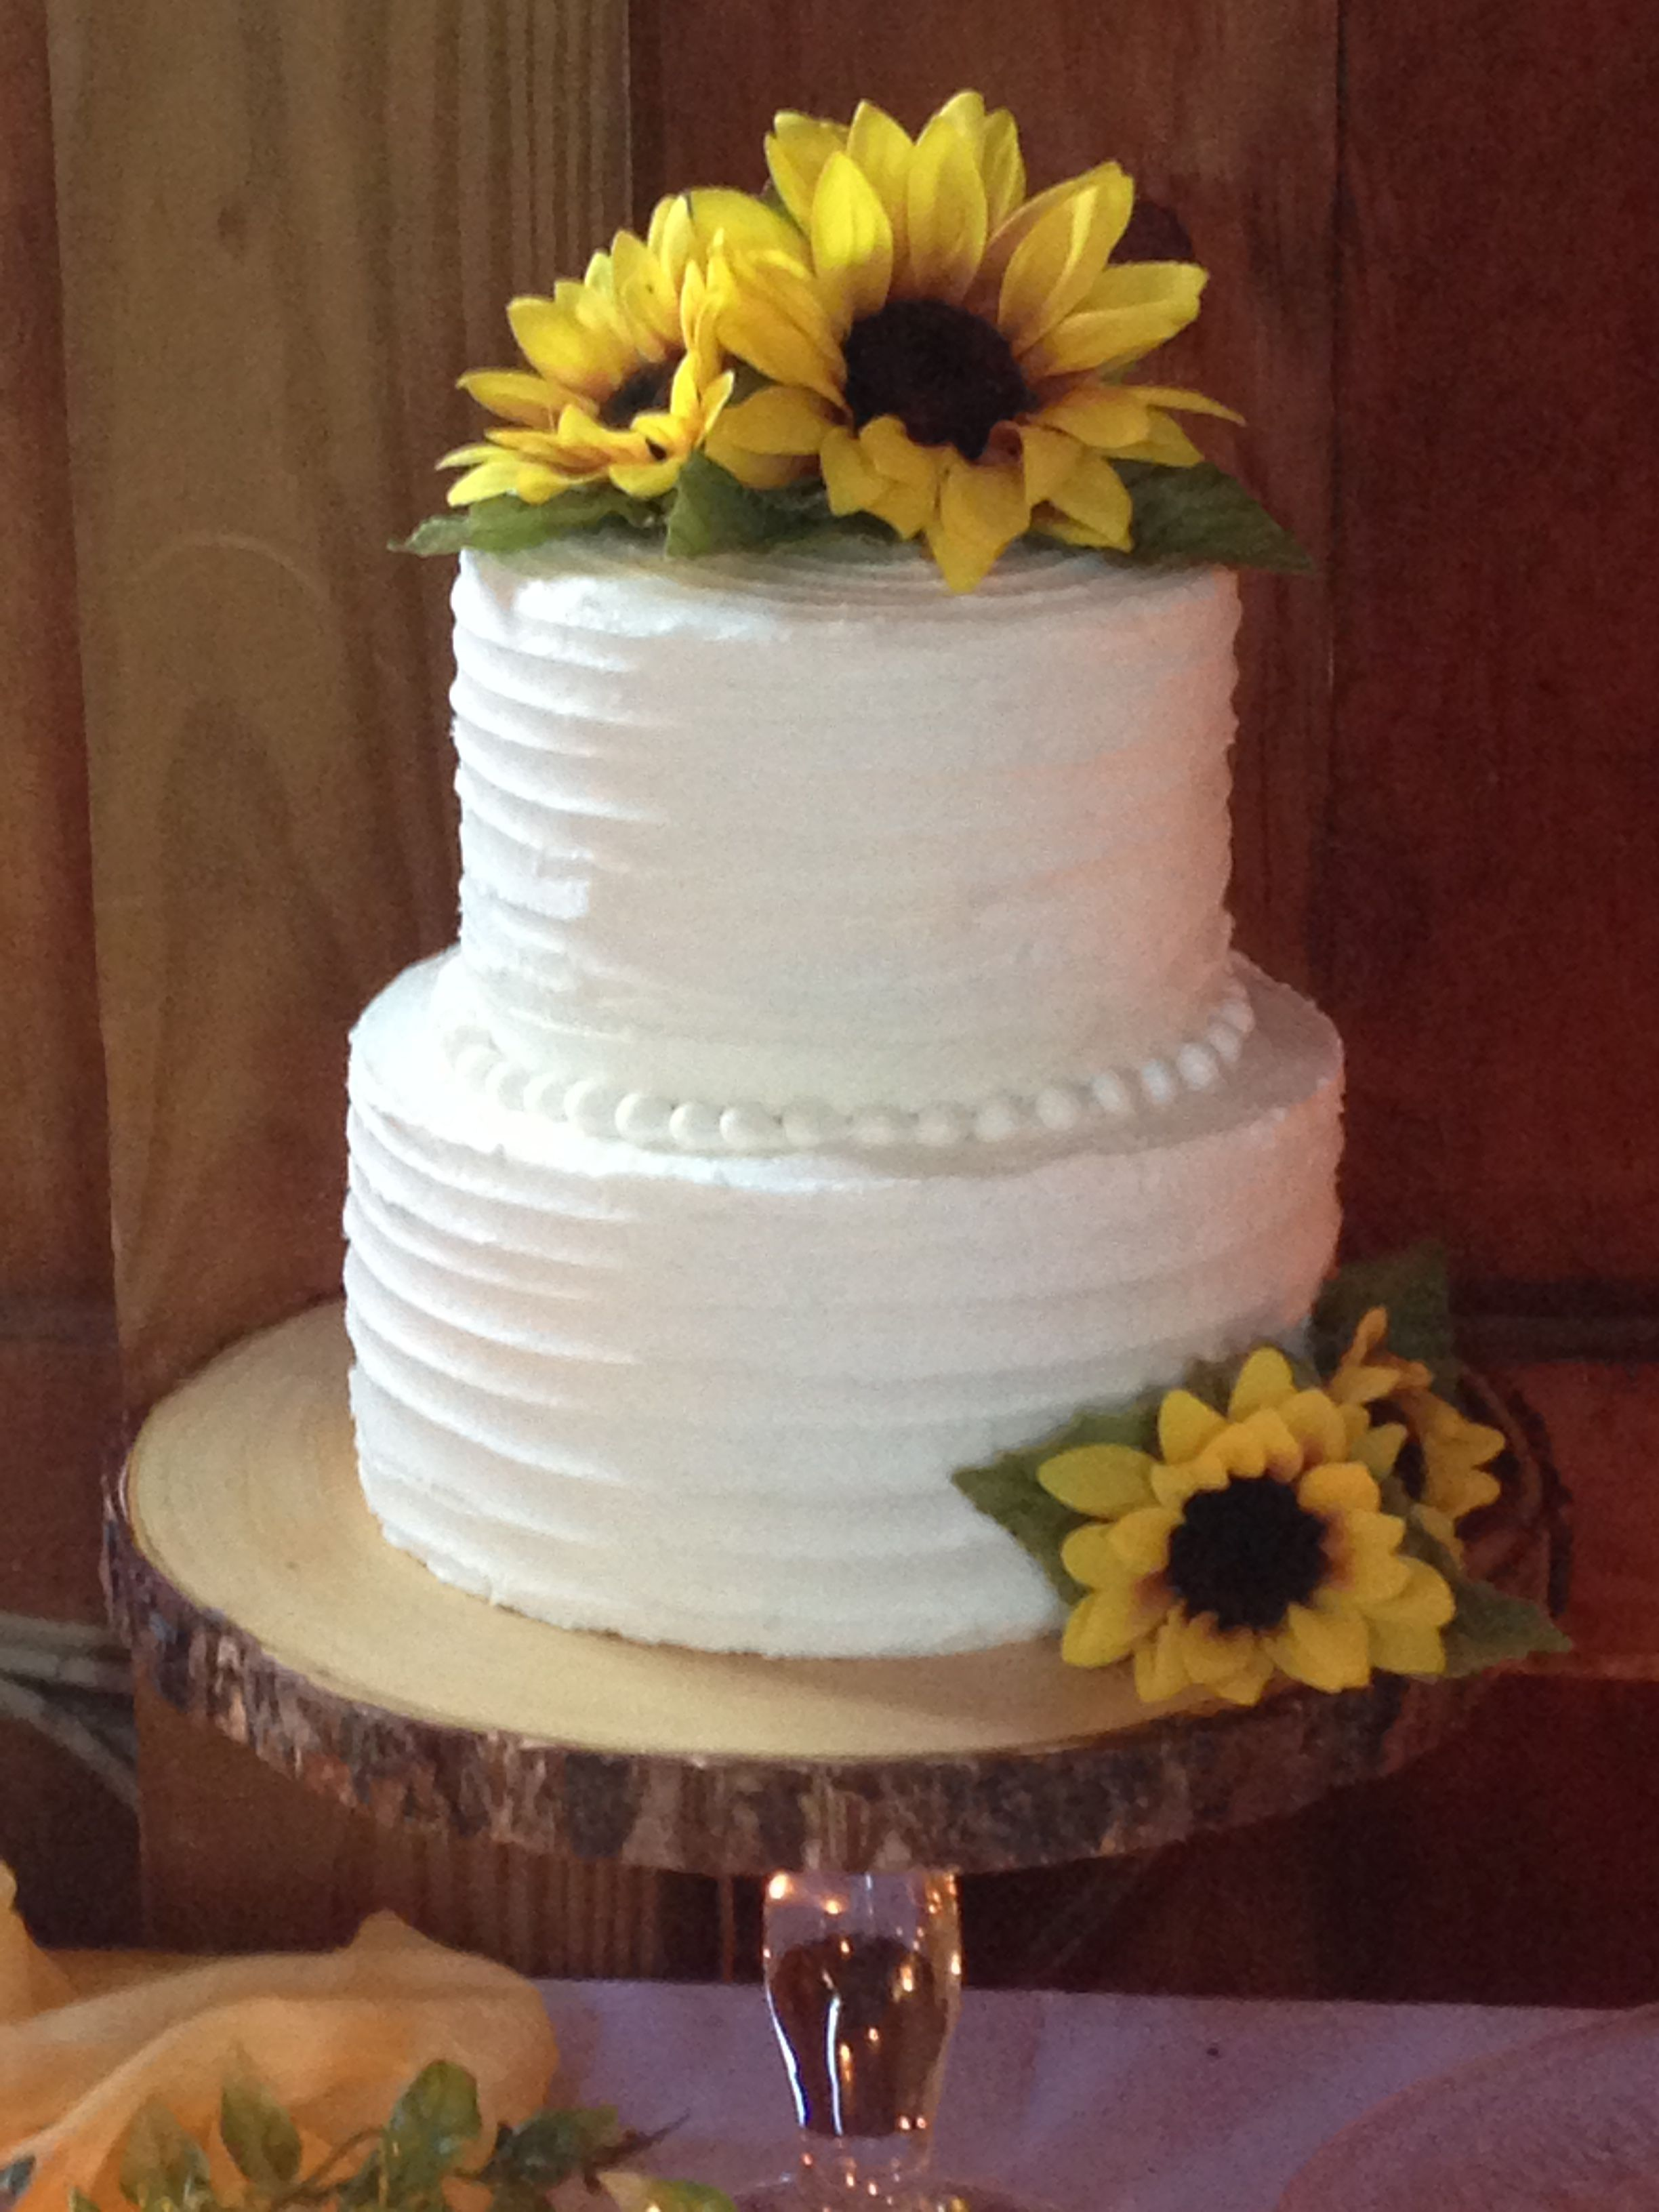 6 Quot Amp 8 Quot Chocolate Layer 2 Tier Wedding Cake Rustic Iced